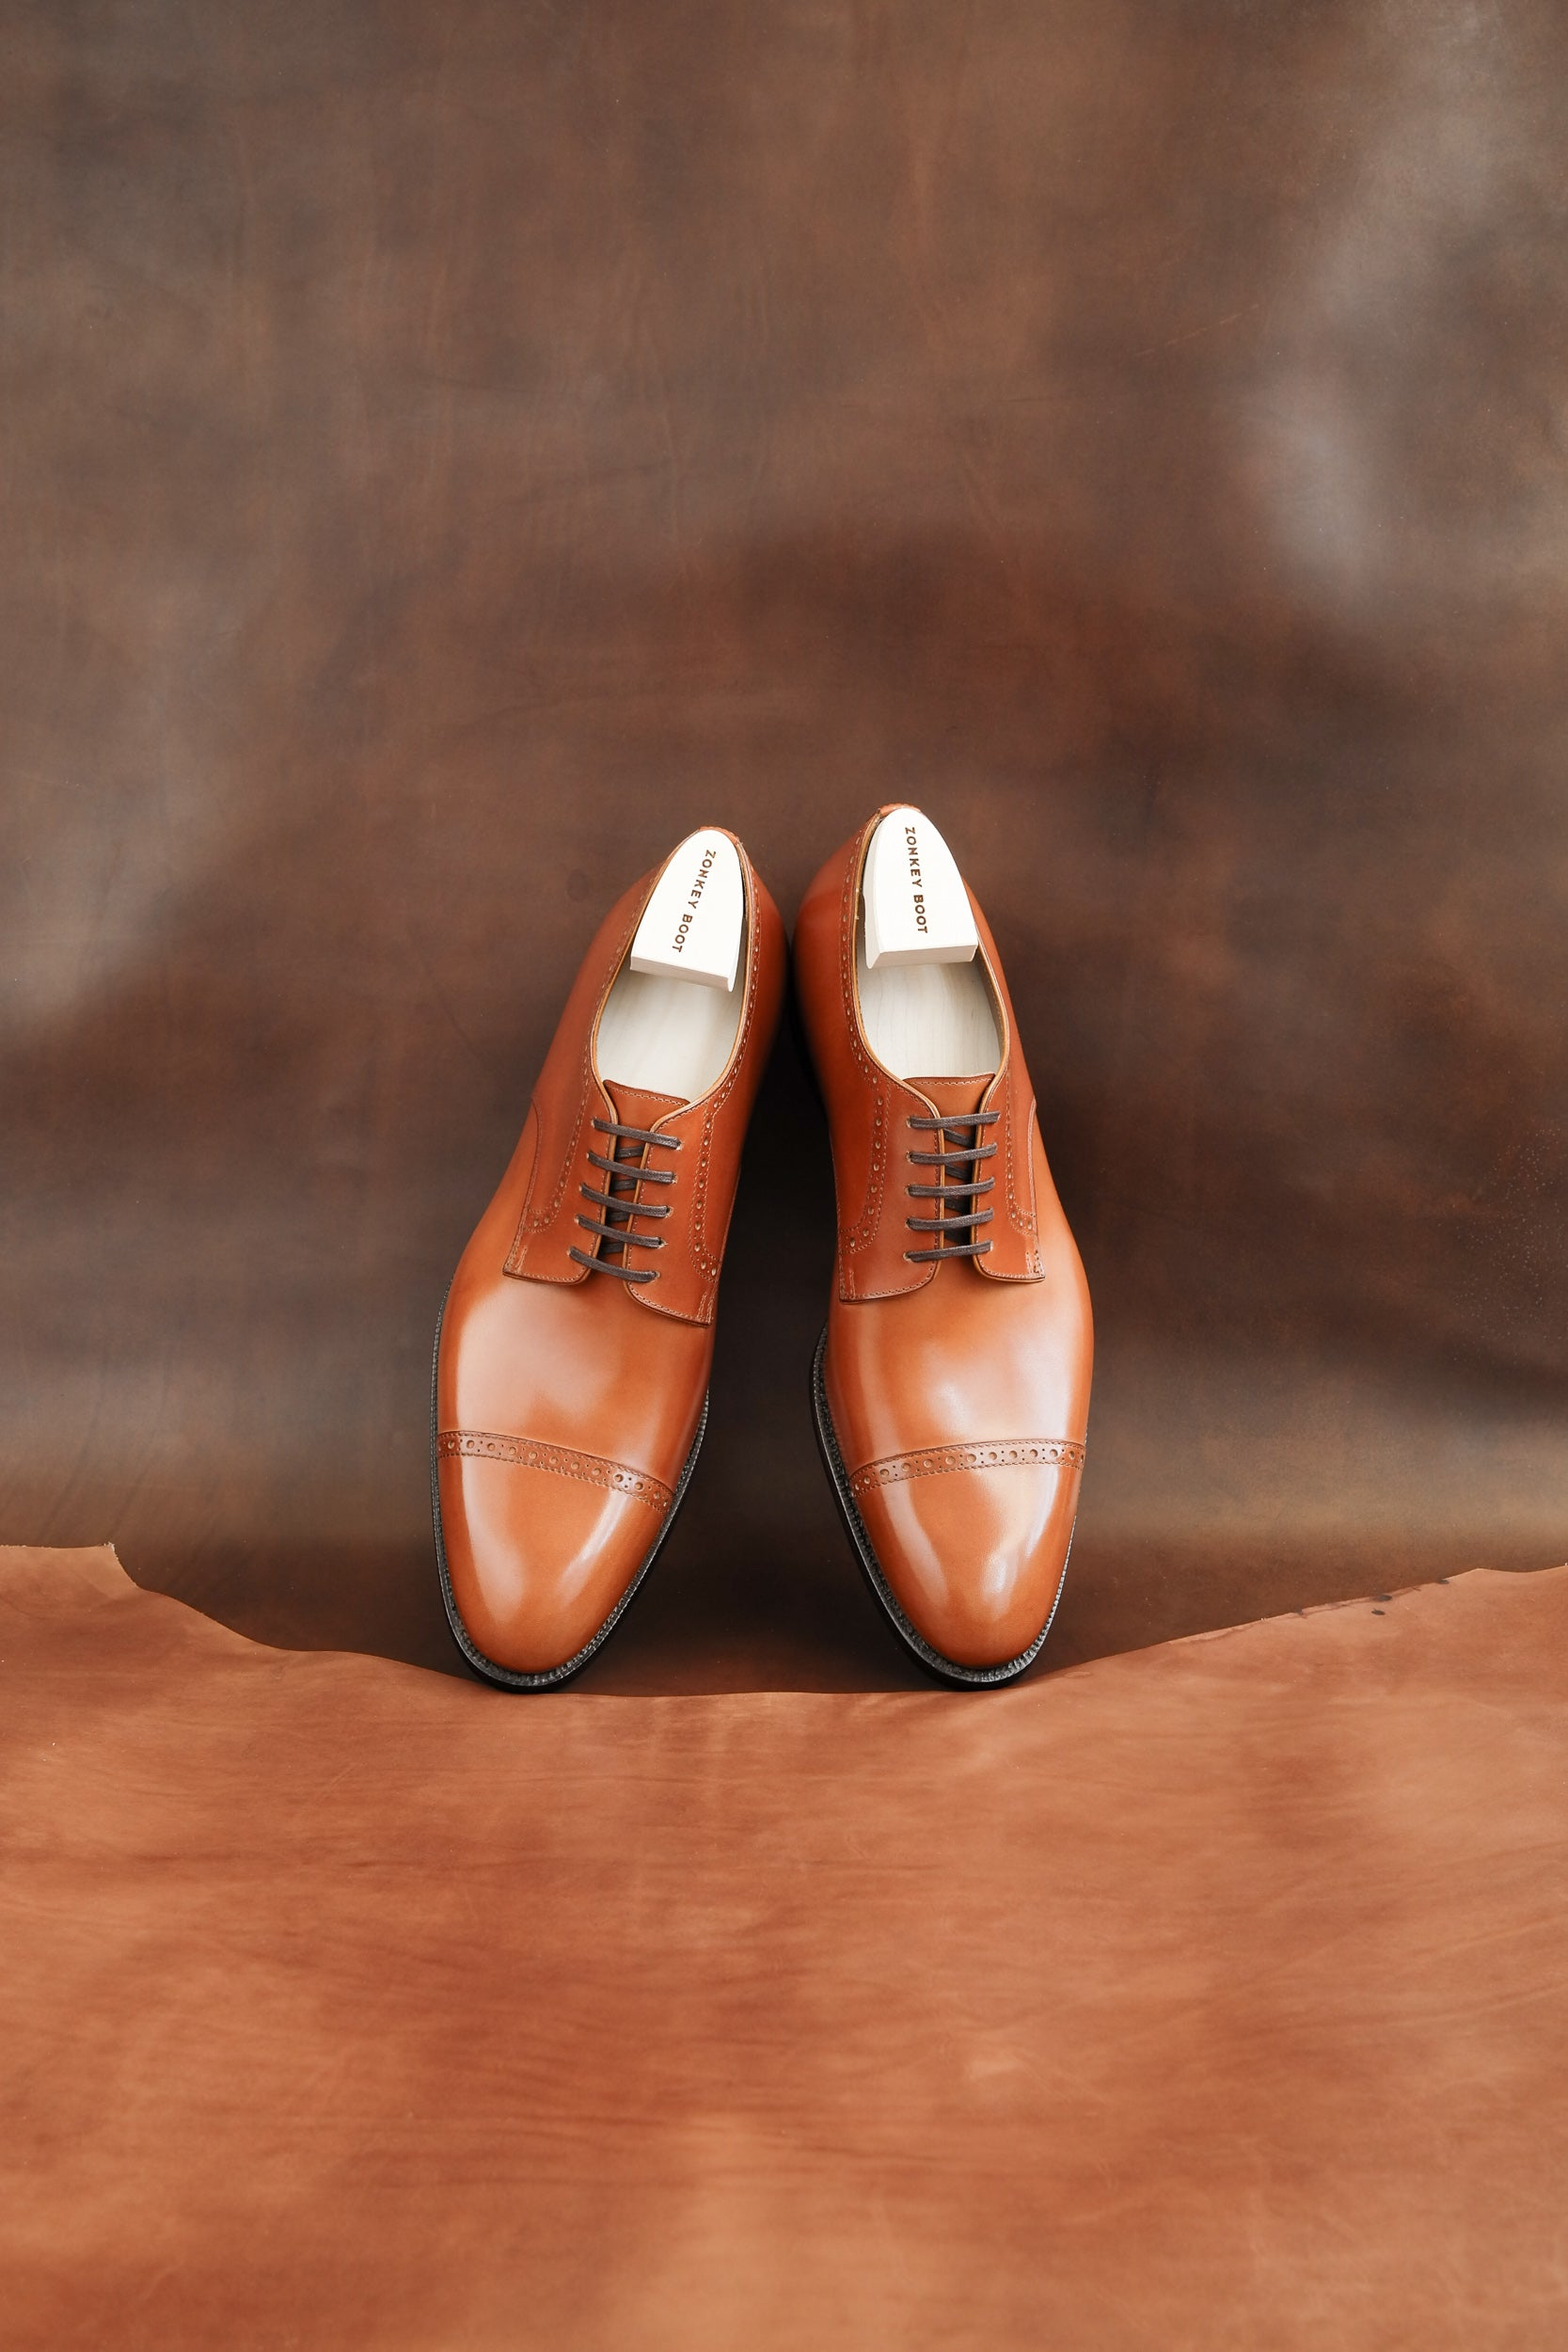 Zonkey Boot hand welted toe-cap derby shoes with brogueing